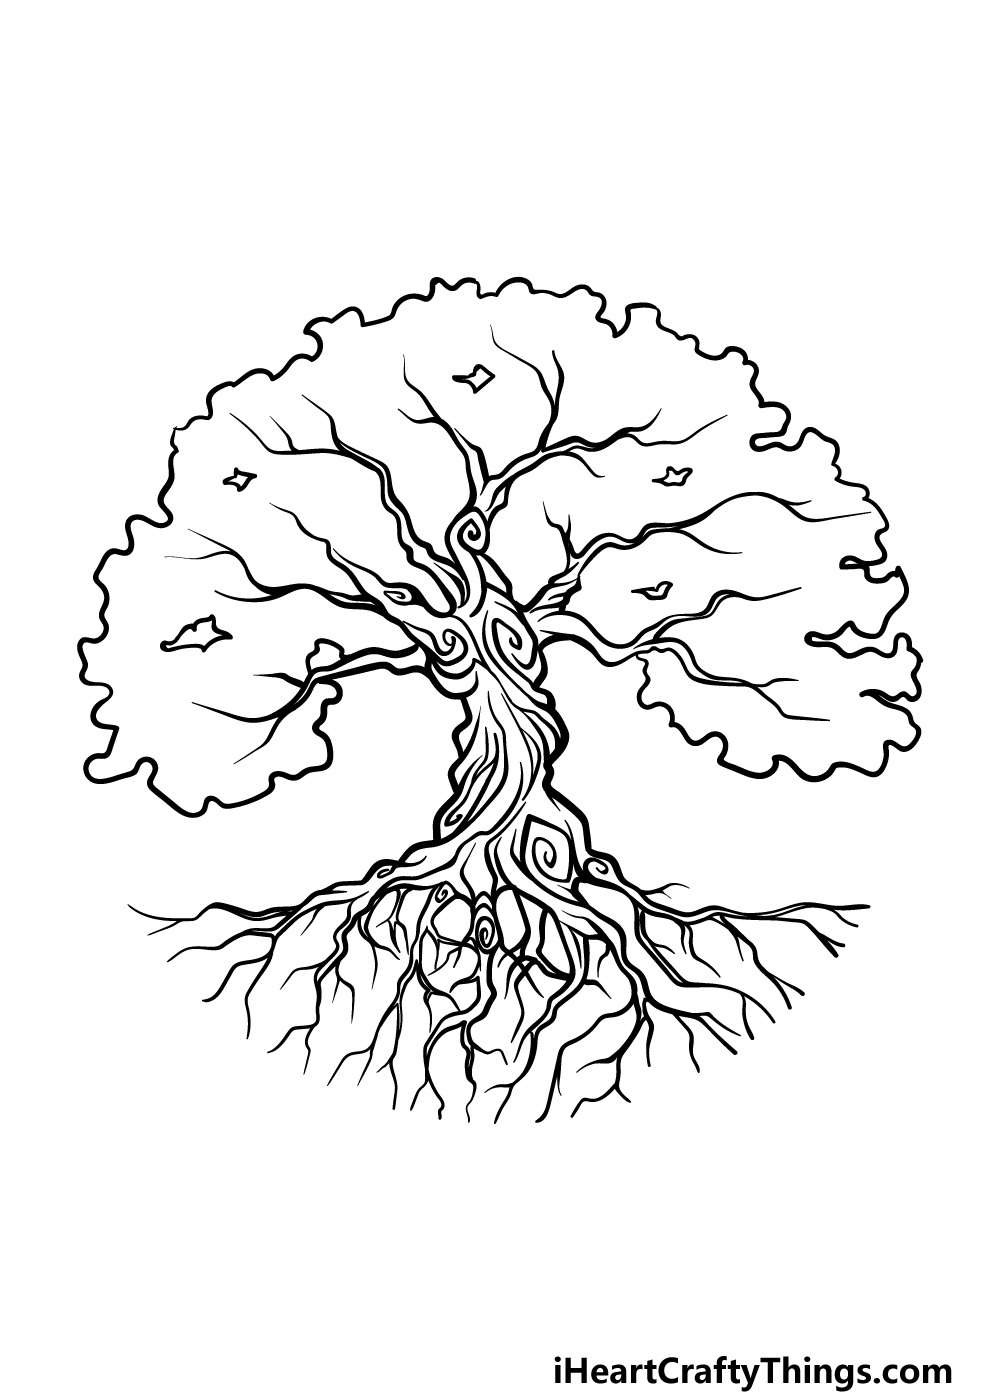 drawing the tree of life step 5